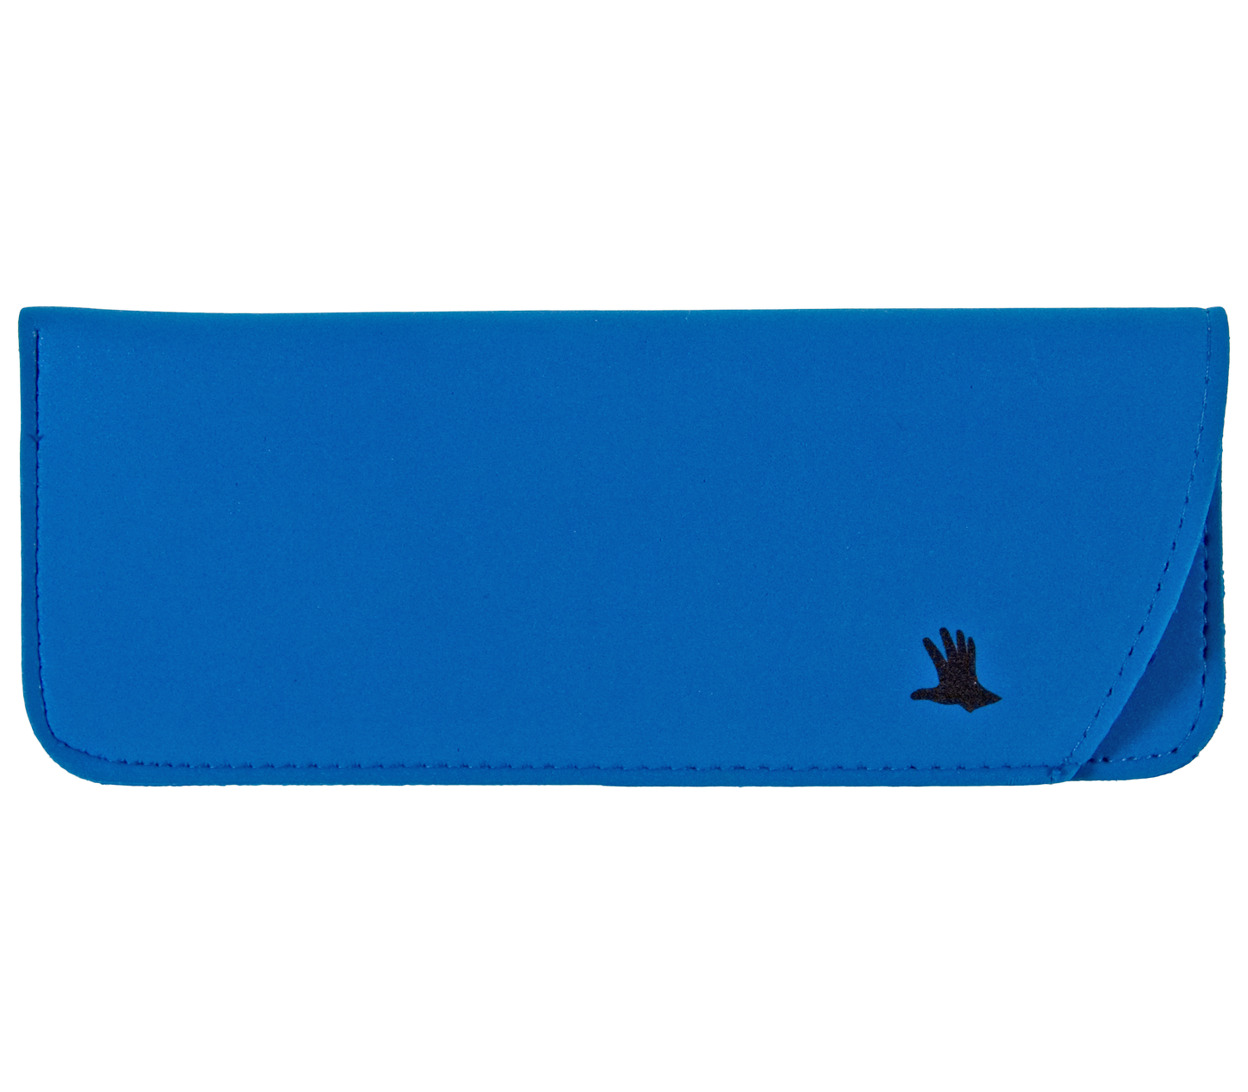 Case - Lollipop (Blue)